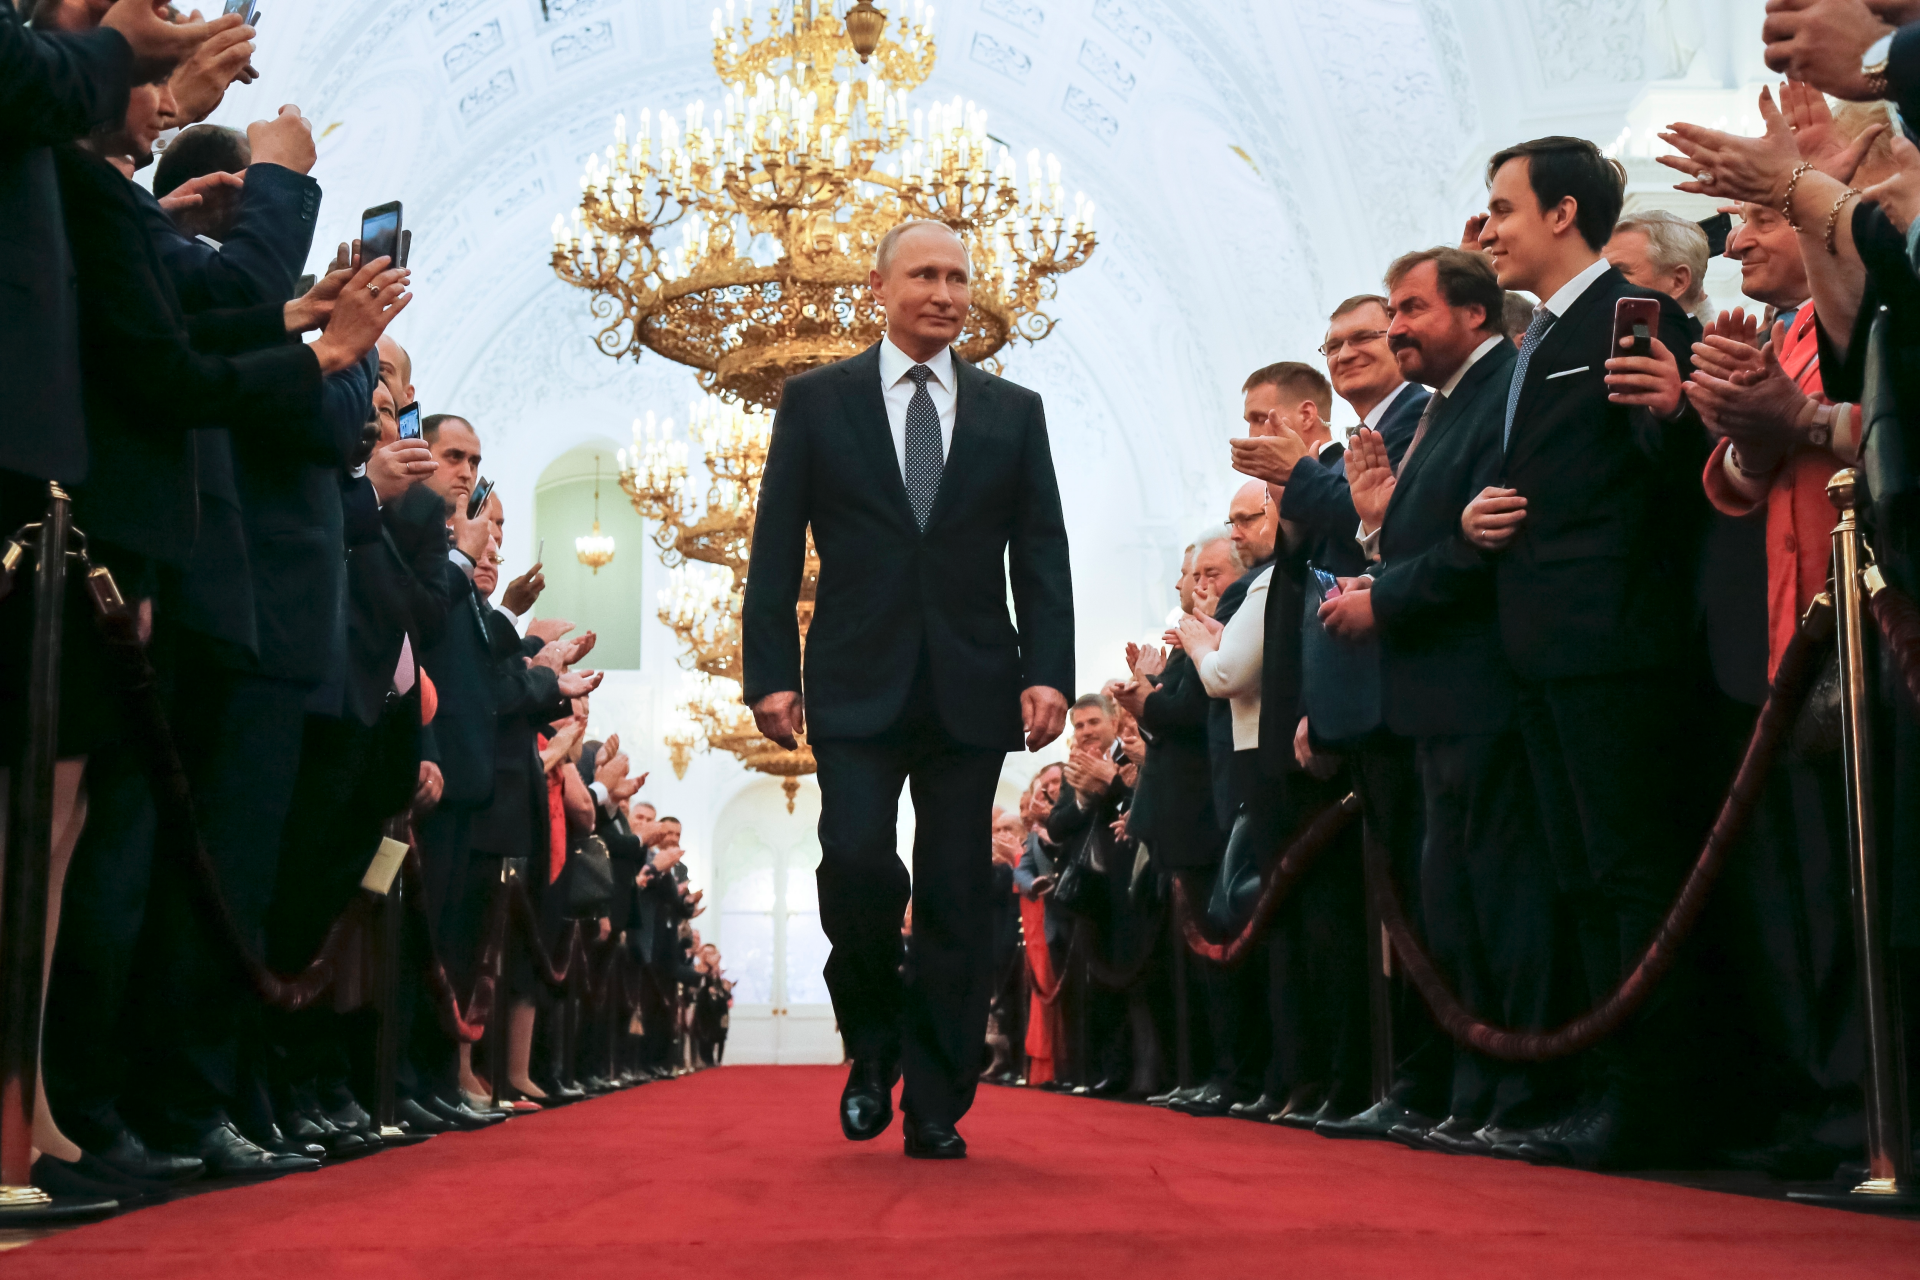 Russian meddling abroad: Does Putin pull all the strings?